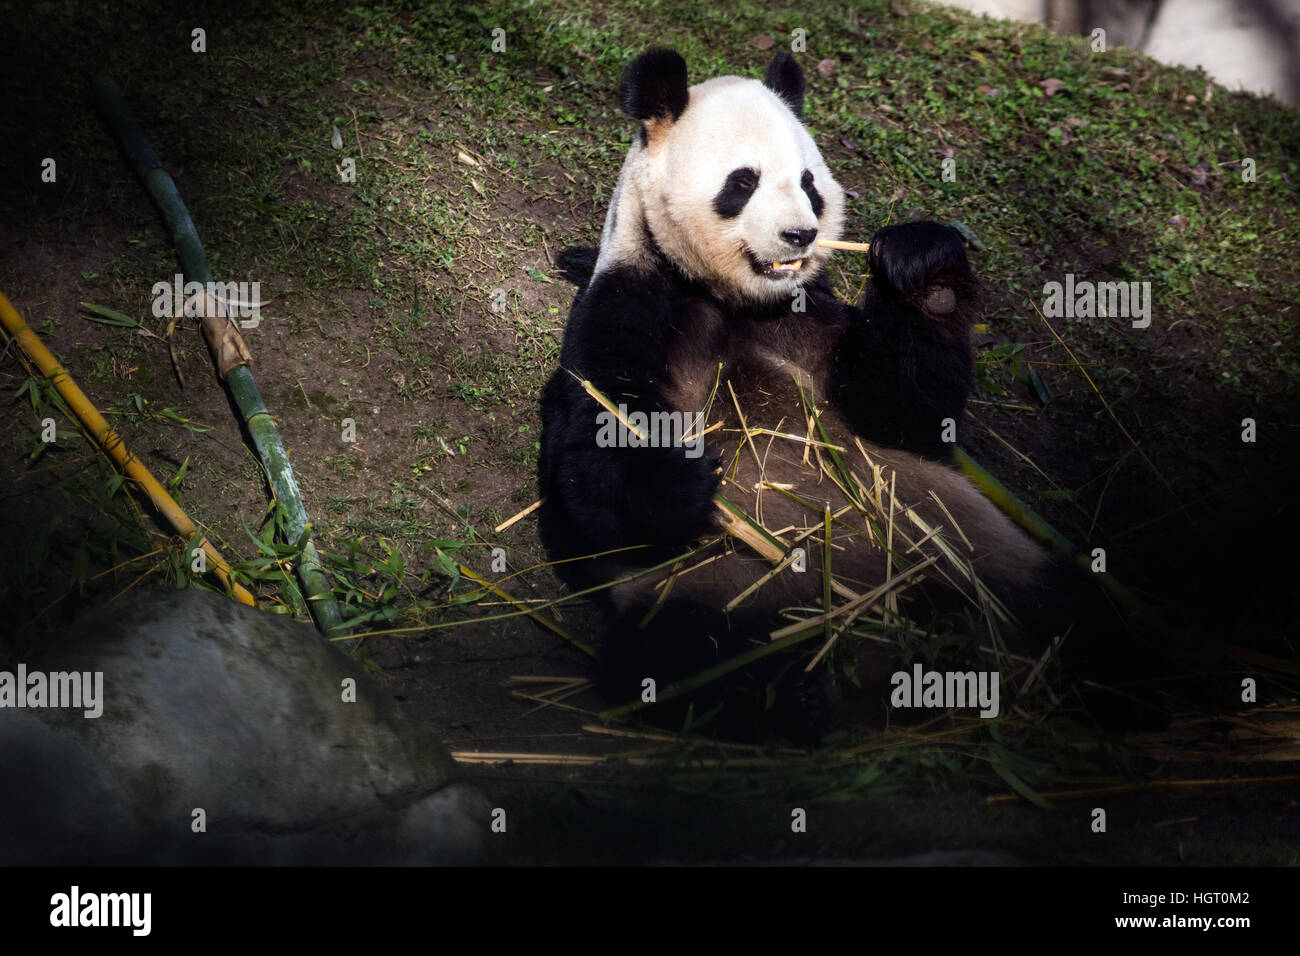 Madrid, Spain. 12th Jan, 2017. Panda Bing Xing, Chulina's father, eating bamboo during the presentation of Chulina - Stock Image